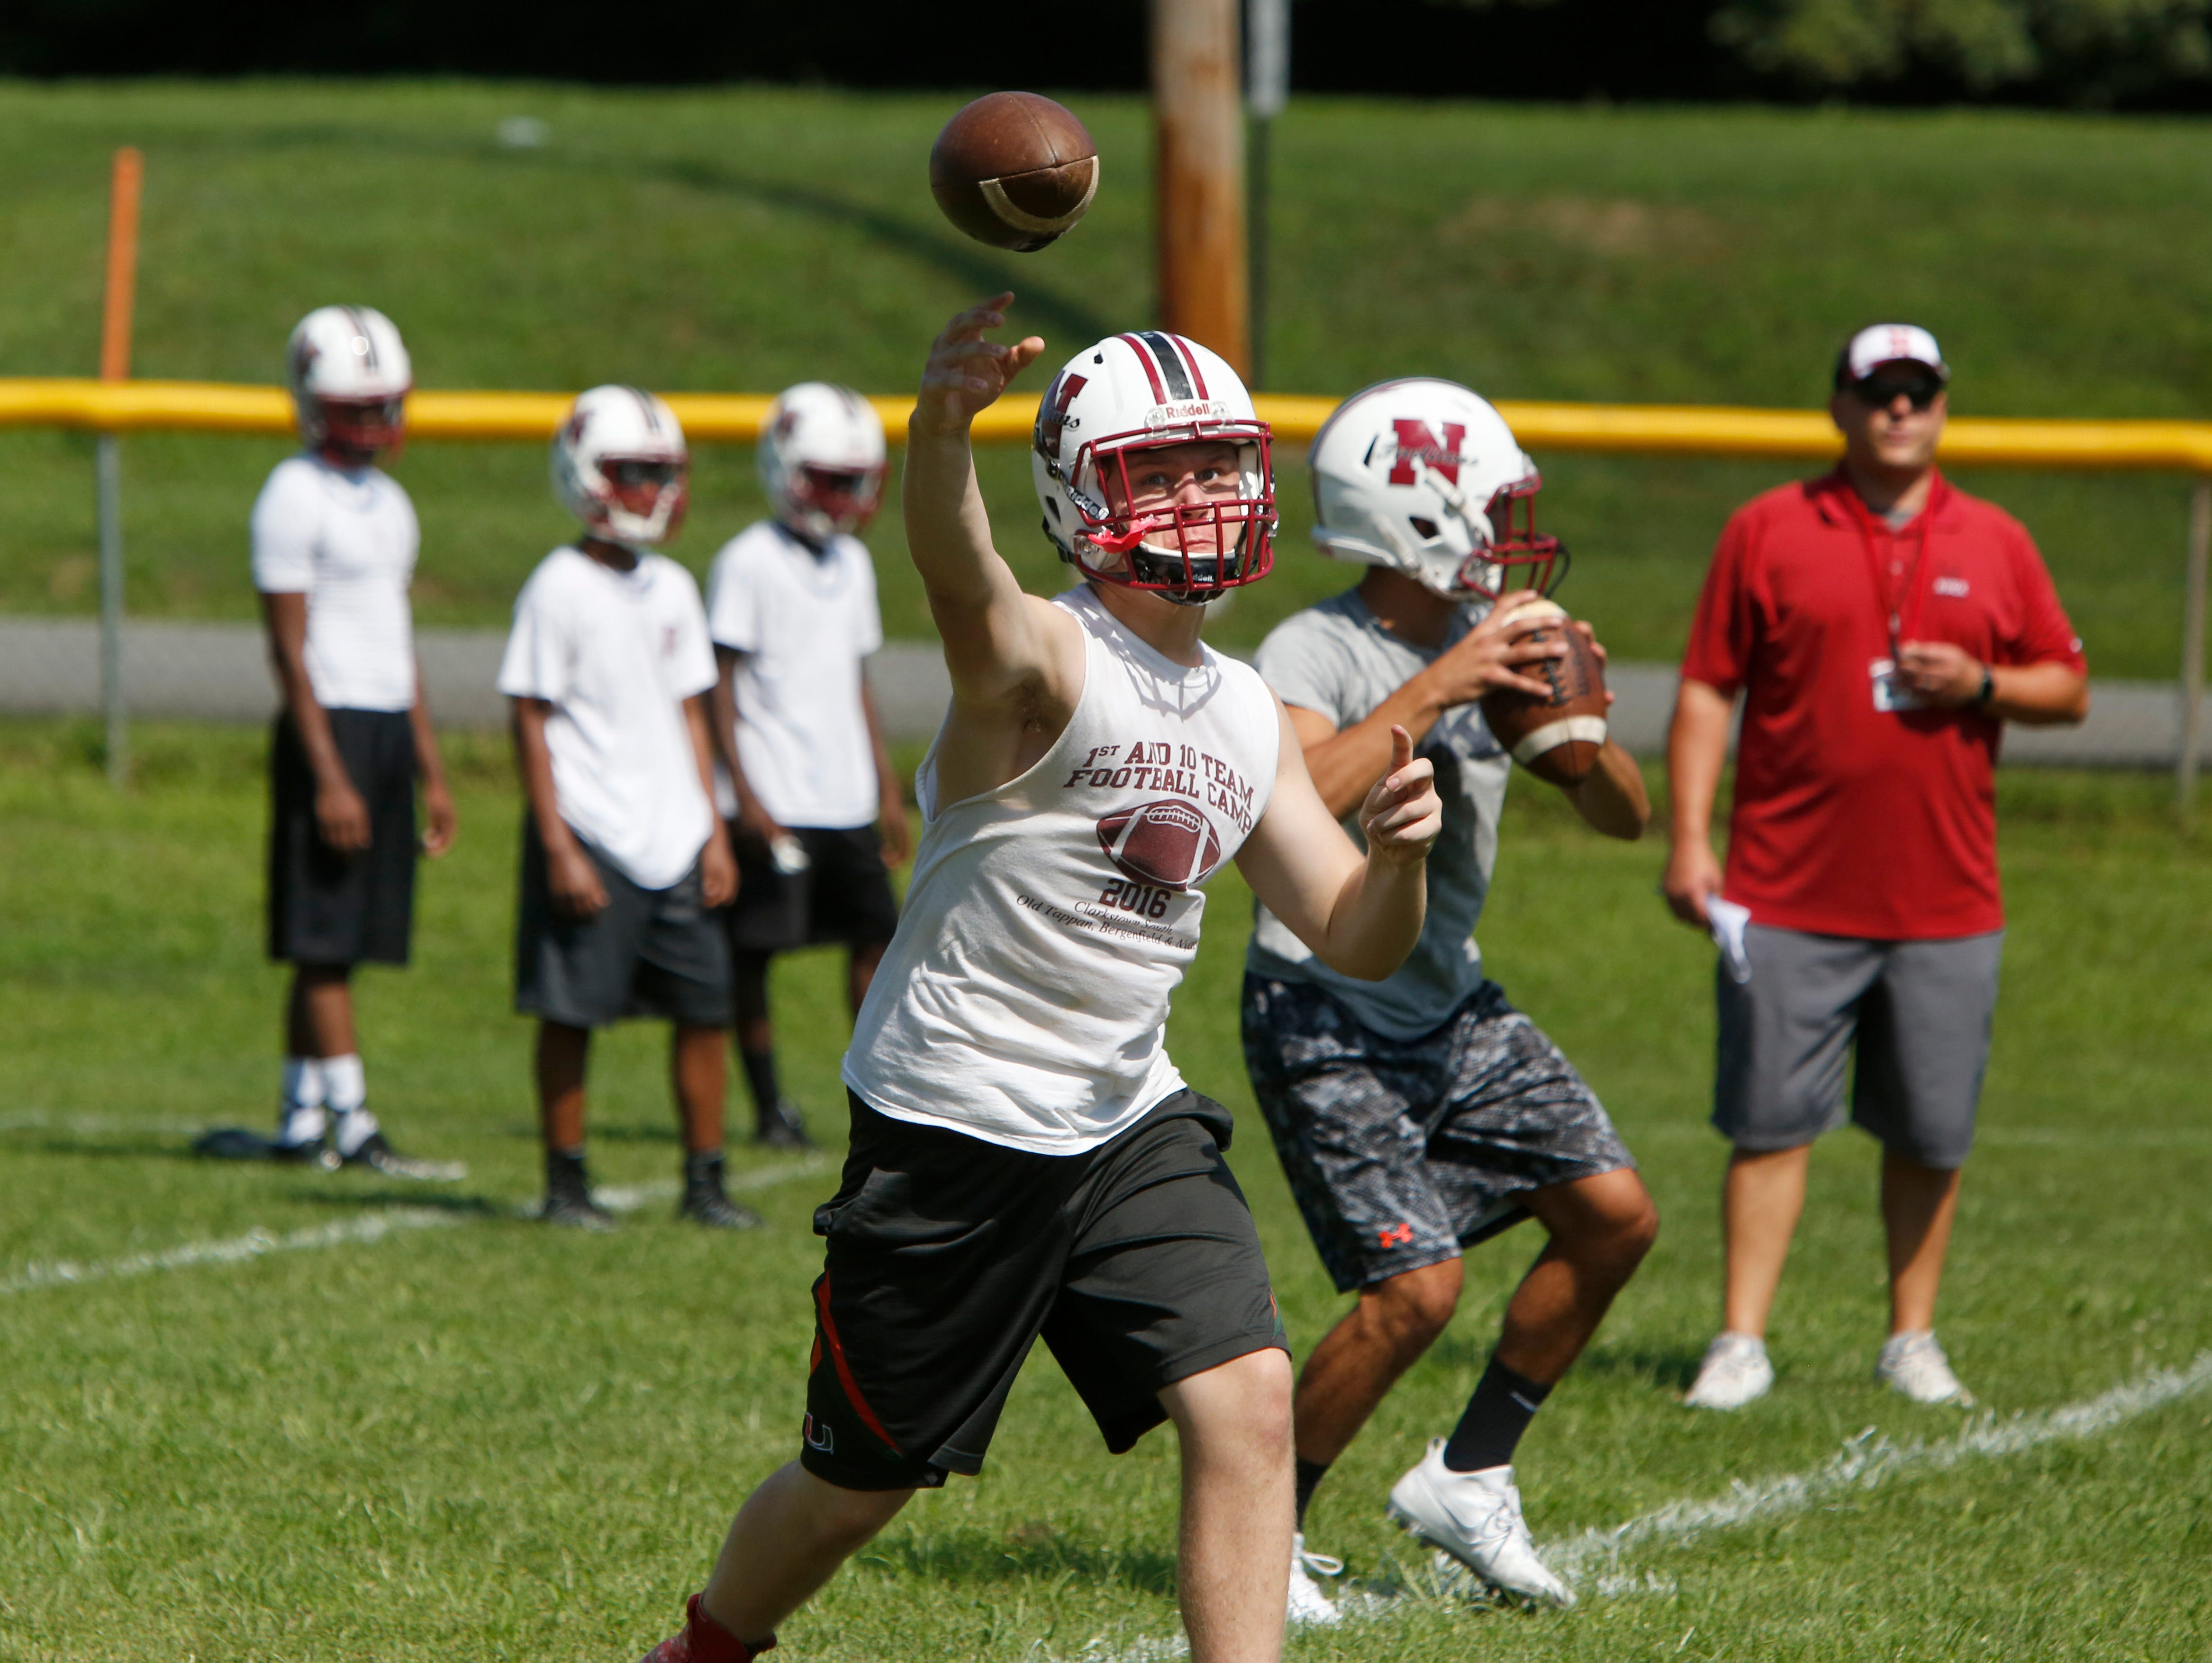 Nyack High School sophomore Parker Stemkowski, left, and senior Christian DiSimone work on passing drills during the first day of football practice Aug. 15, 2016 at Nyack Middle School.